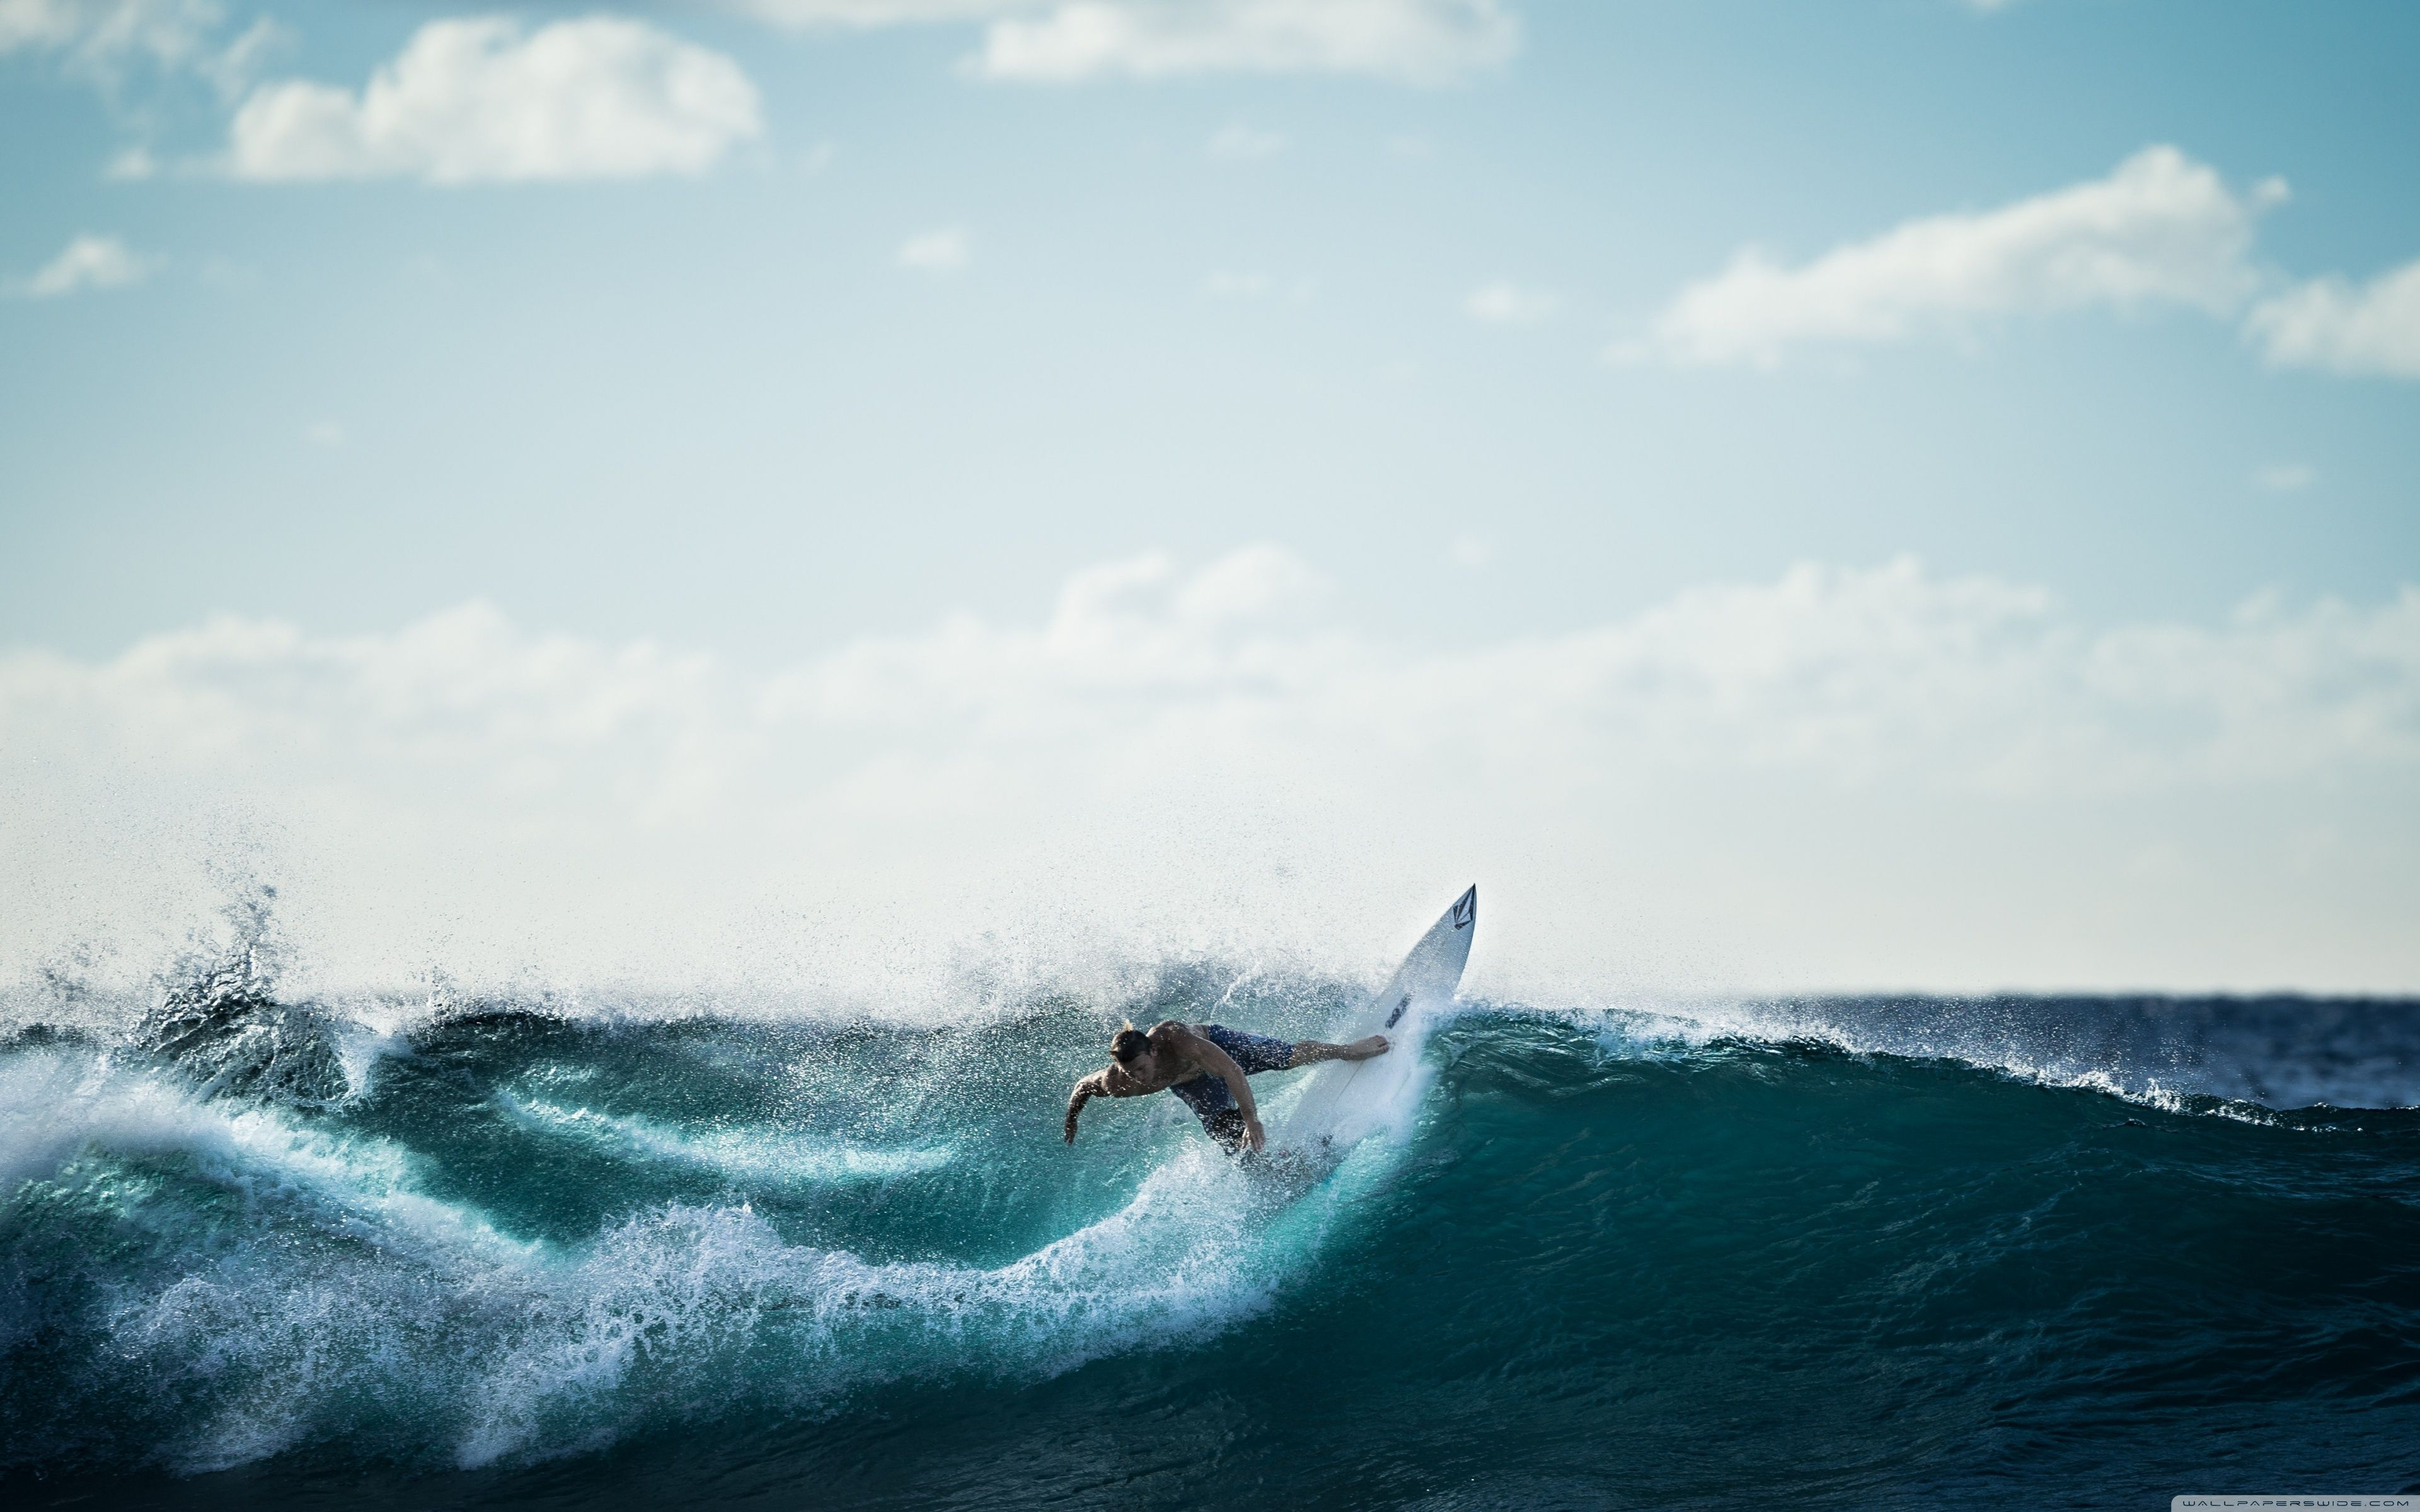 Surfing 4k Wallpapers   Top Surfing 4k Backgrounds 3840x2400